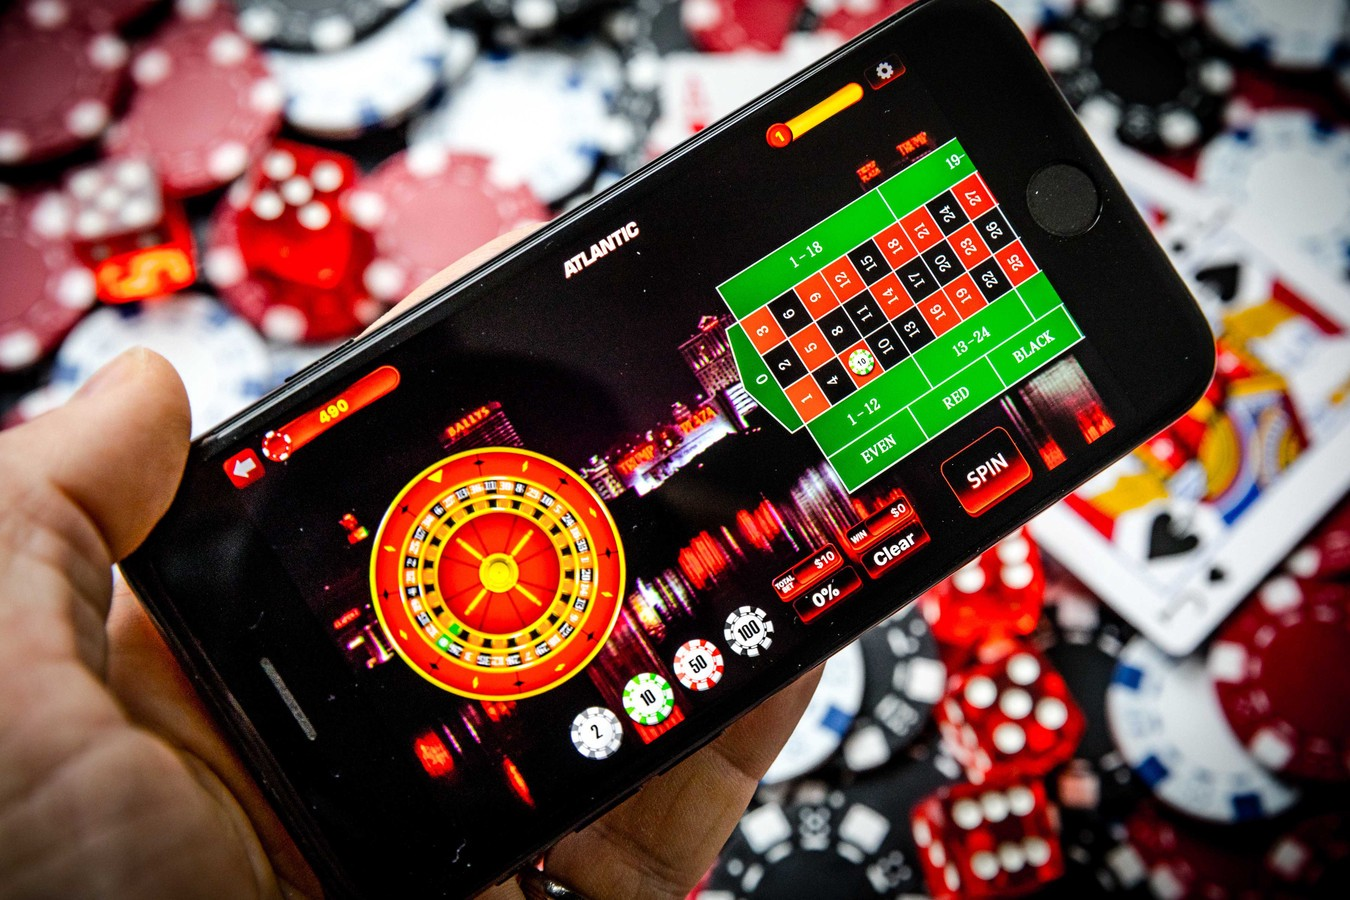 Best Mobile Casinos for 2020 - A W Peller